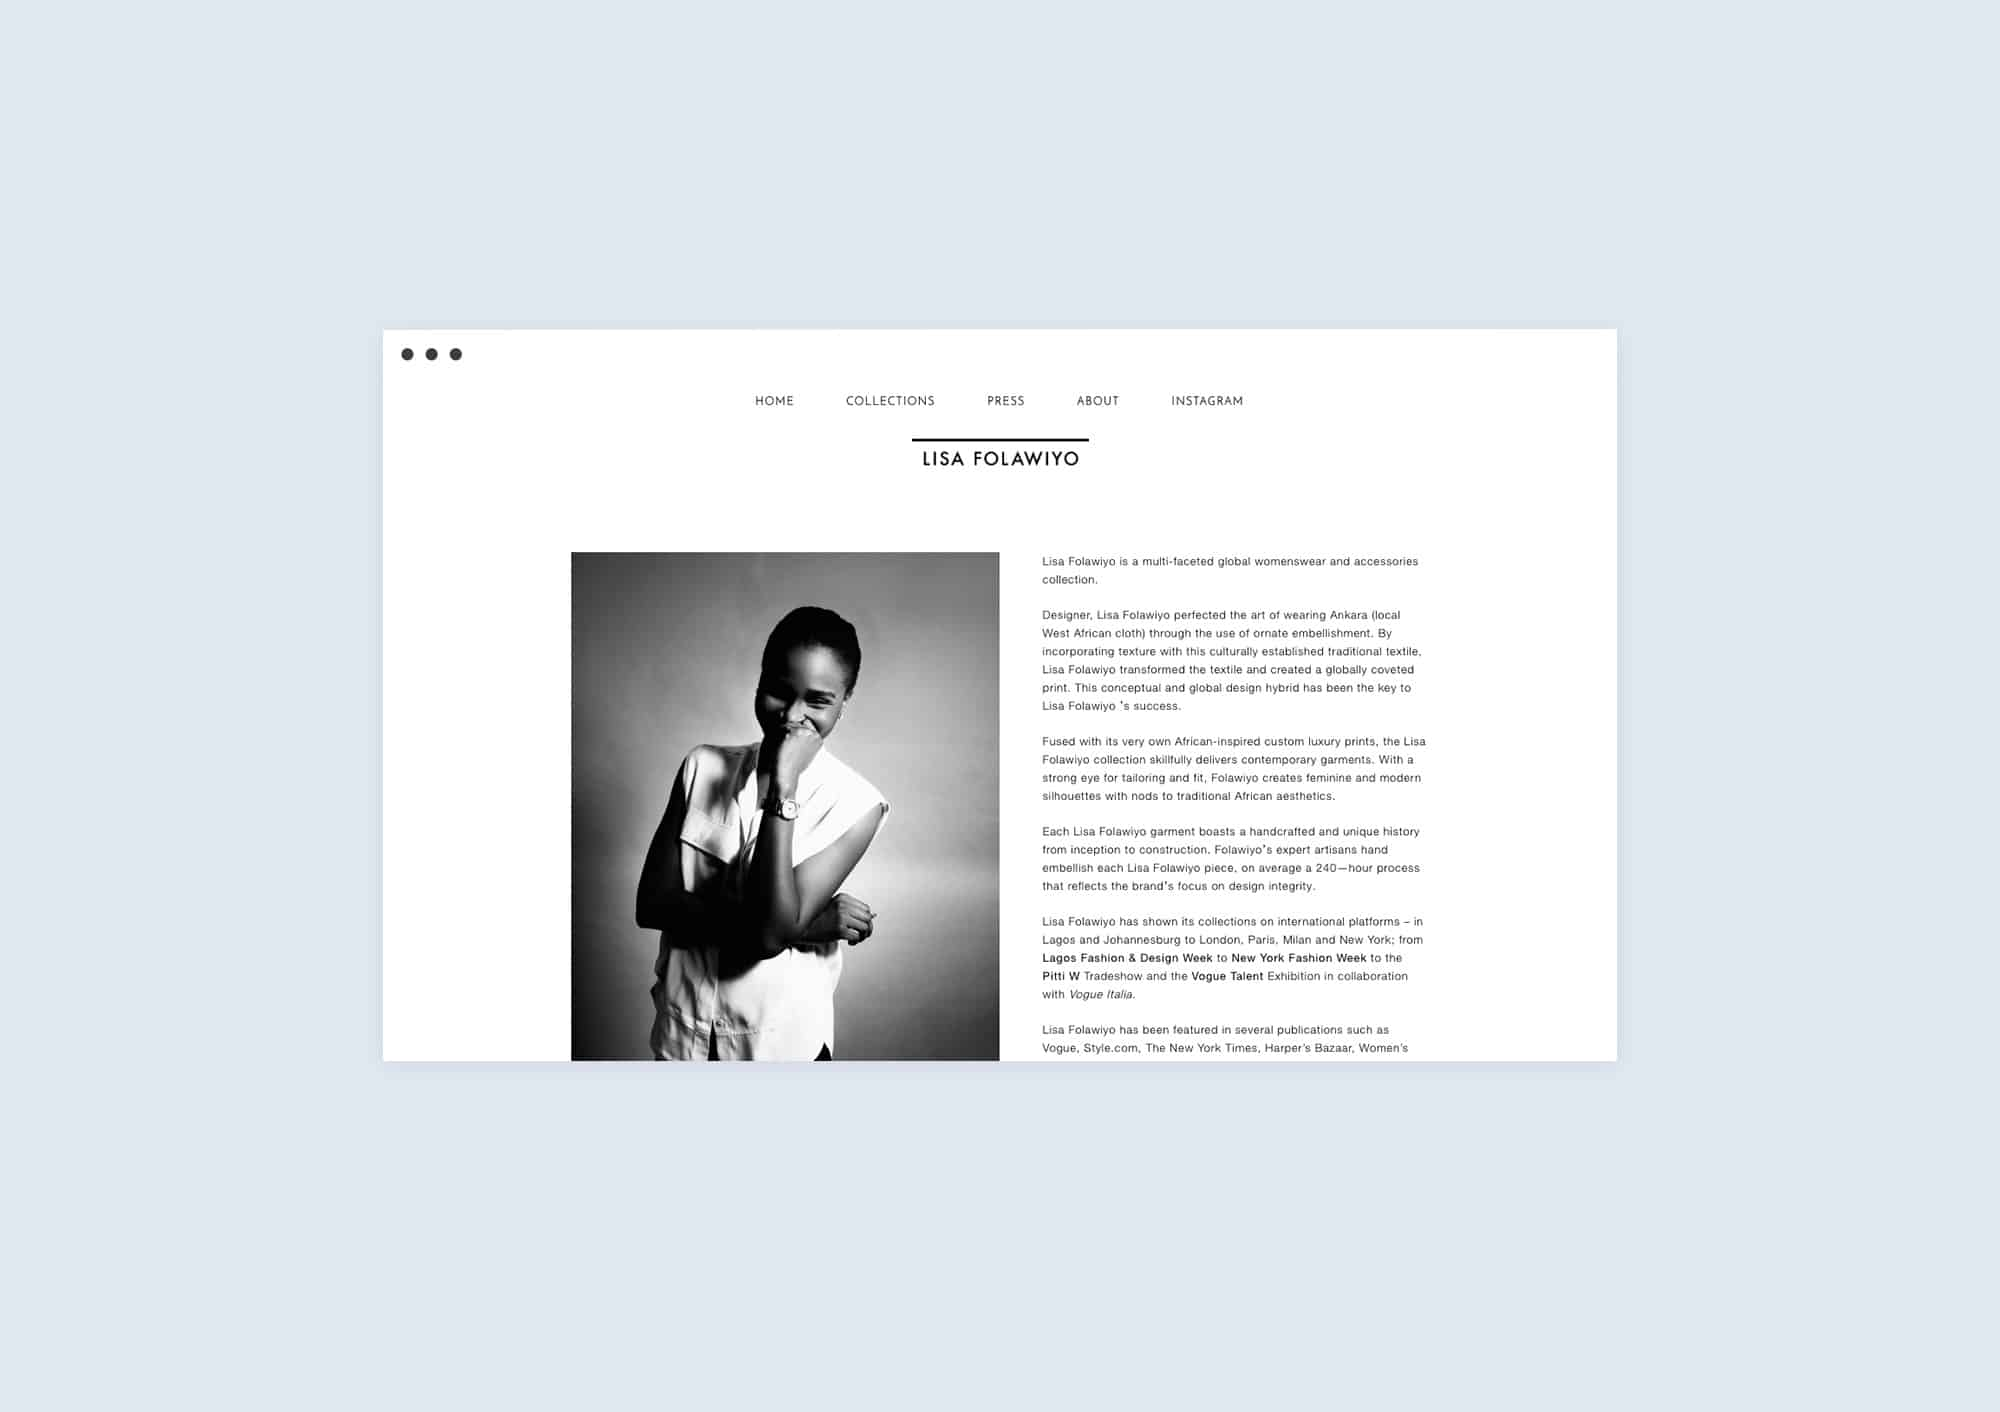 About page design website for Lisa Folawiyo